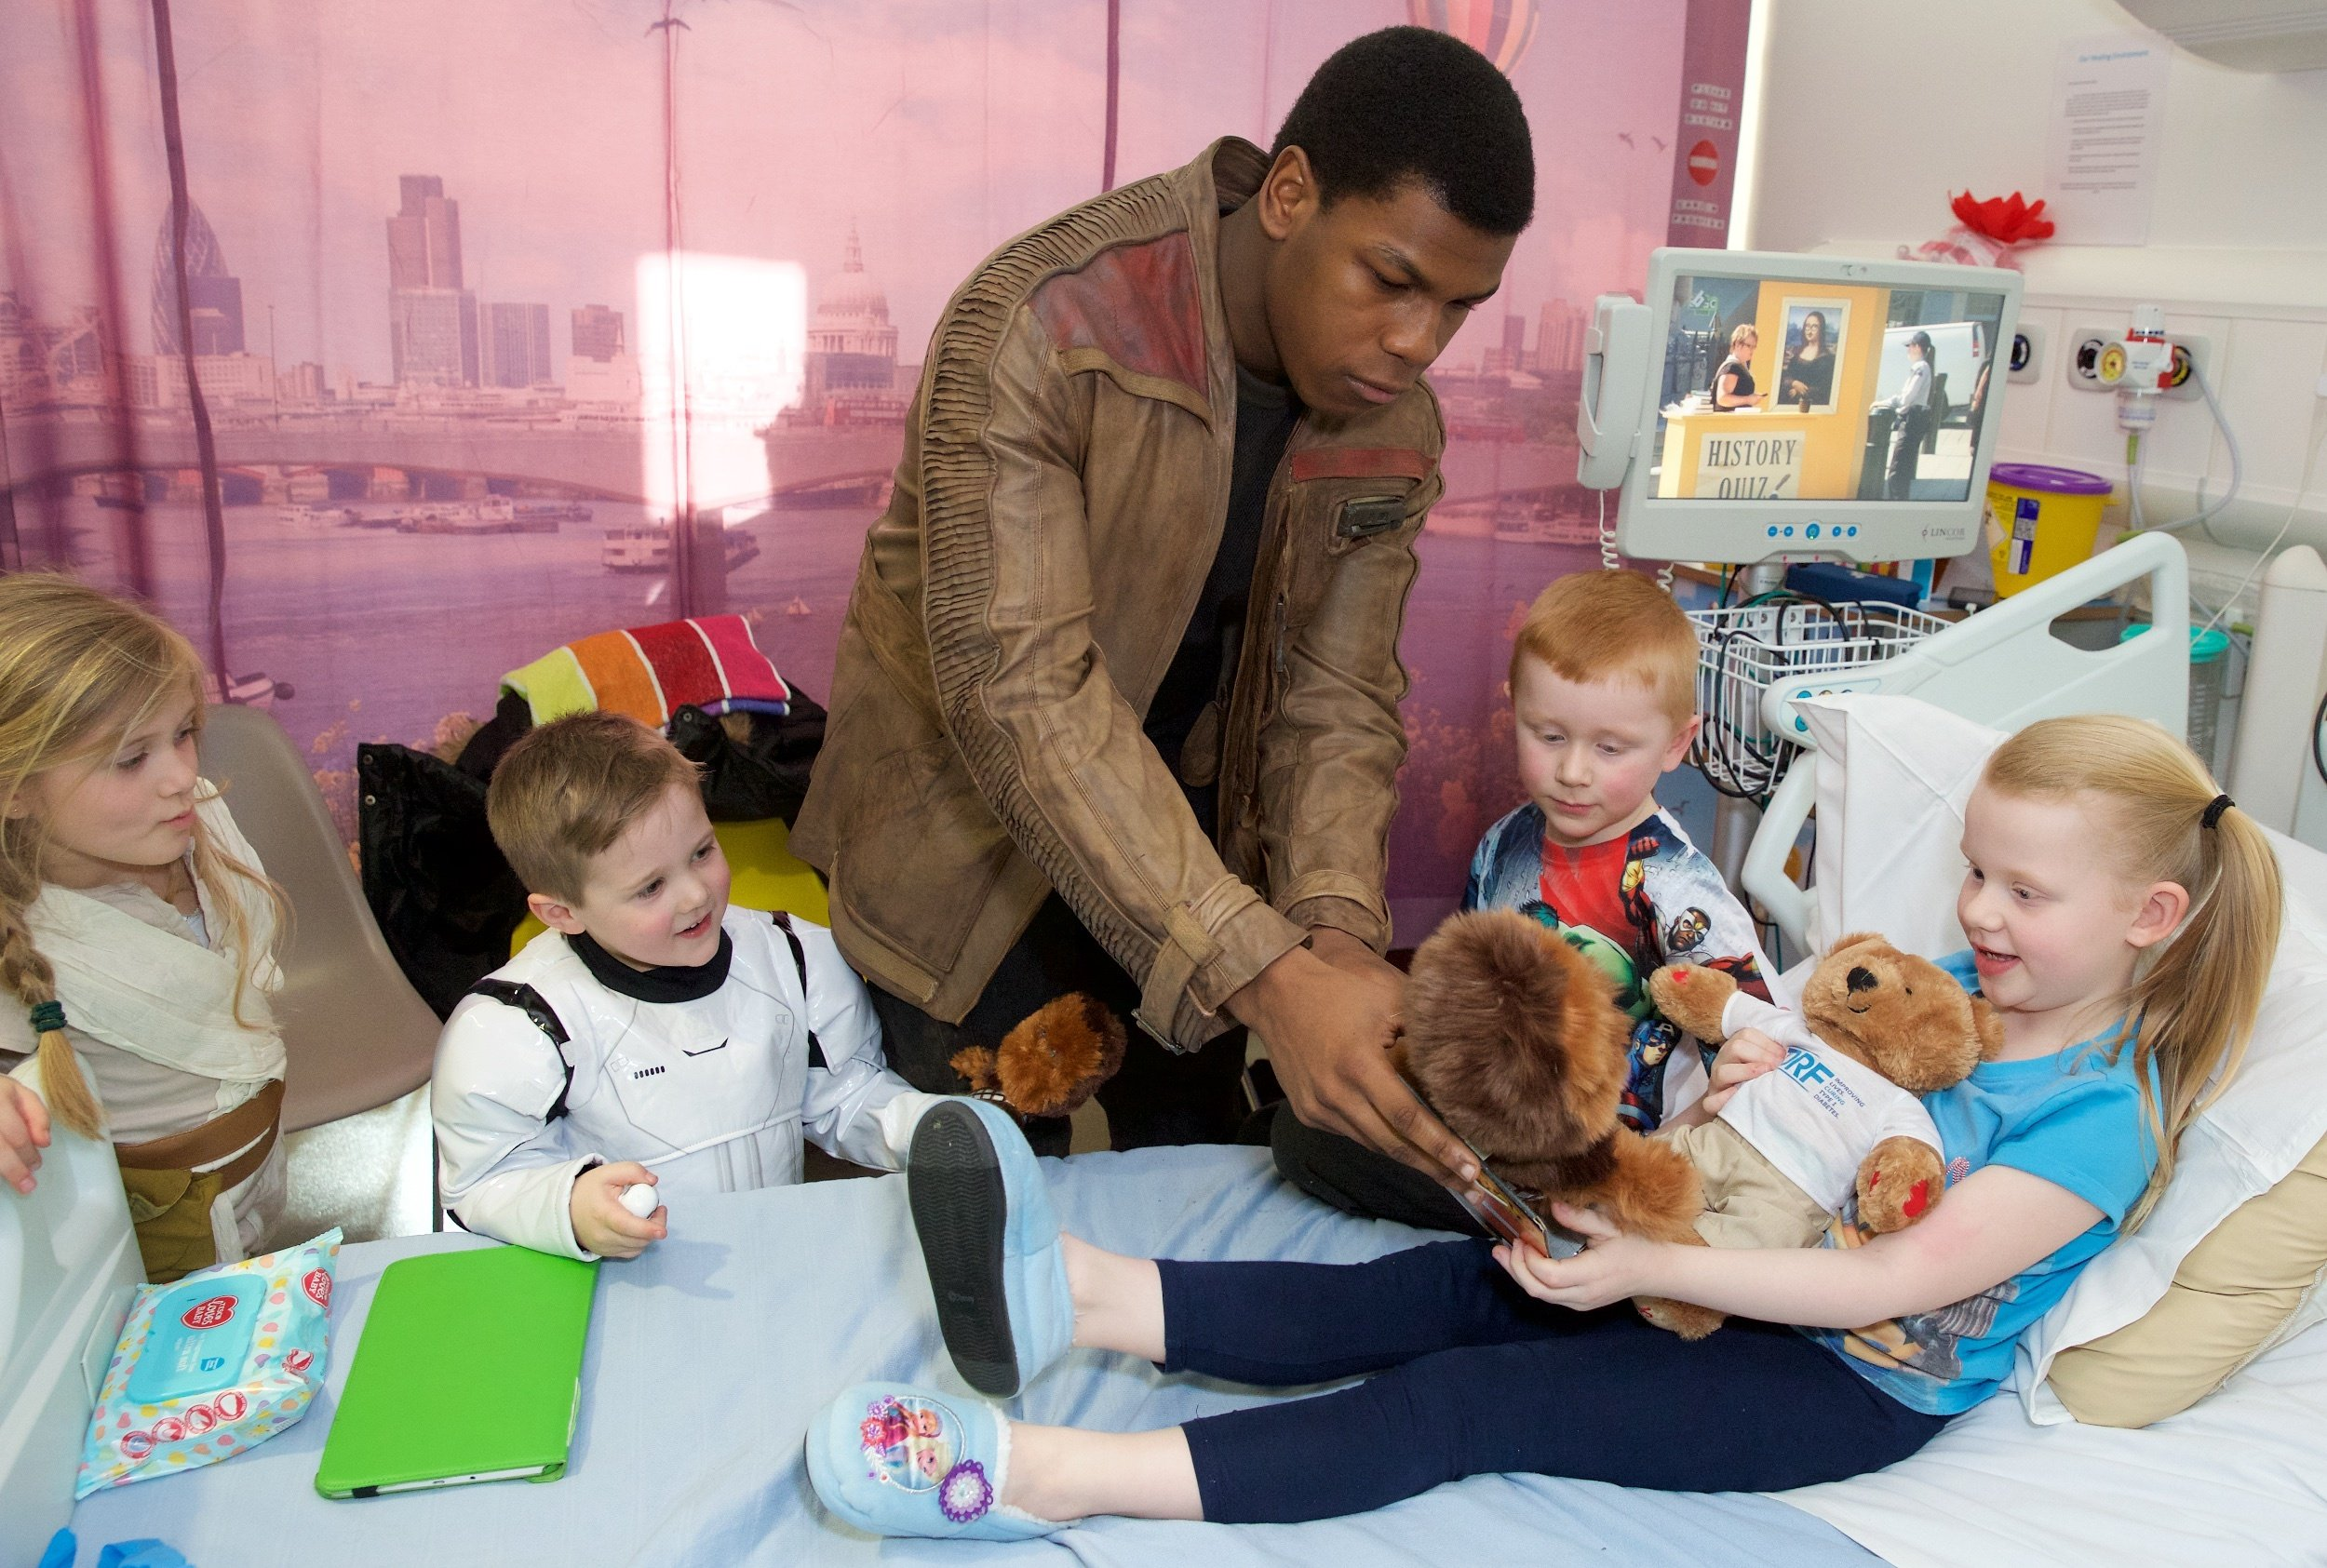 Star Wars' John Boyega dressed as Finn and surprised young children at a London hospital